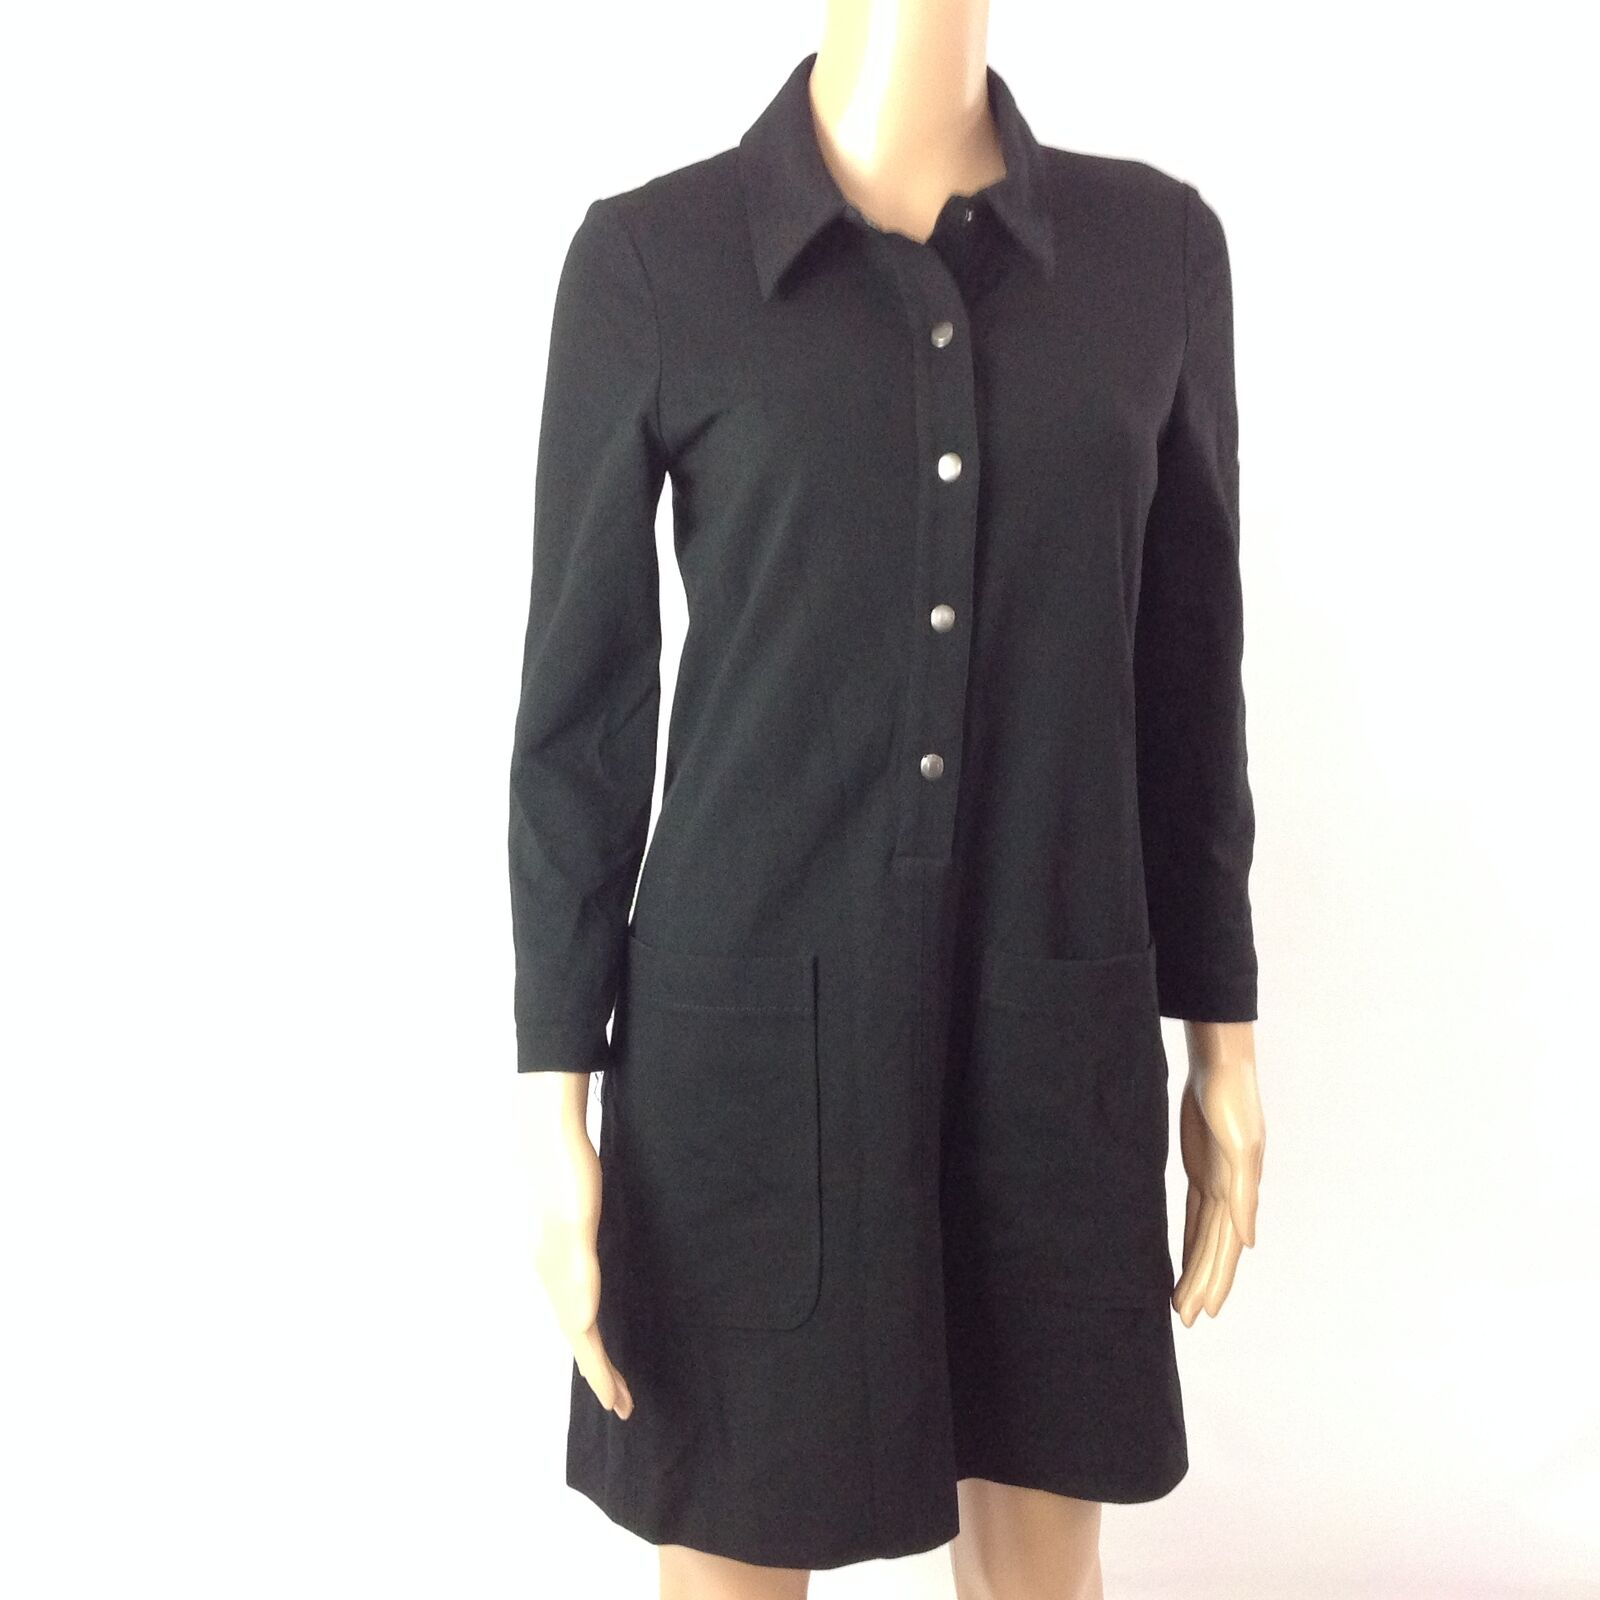 Theory F60 damen Shift Dress Long Sleeve schwarz Größe S StyleF0726612 Work